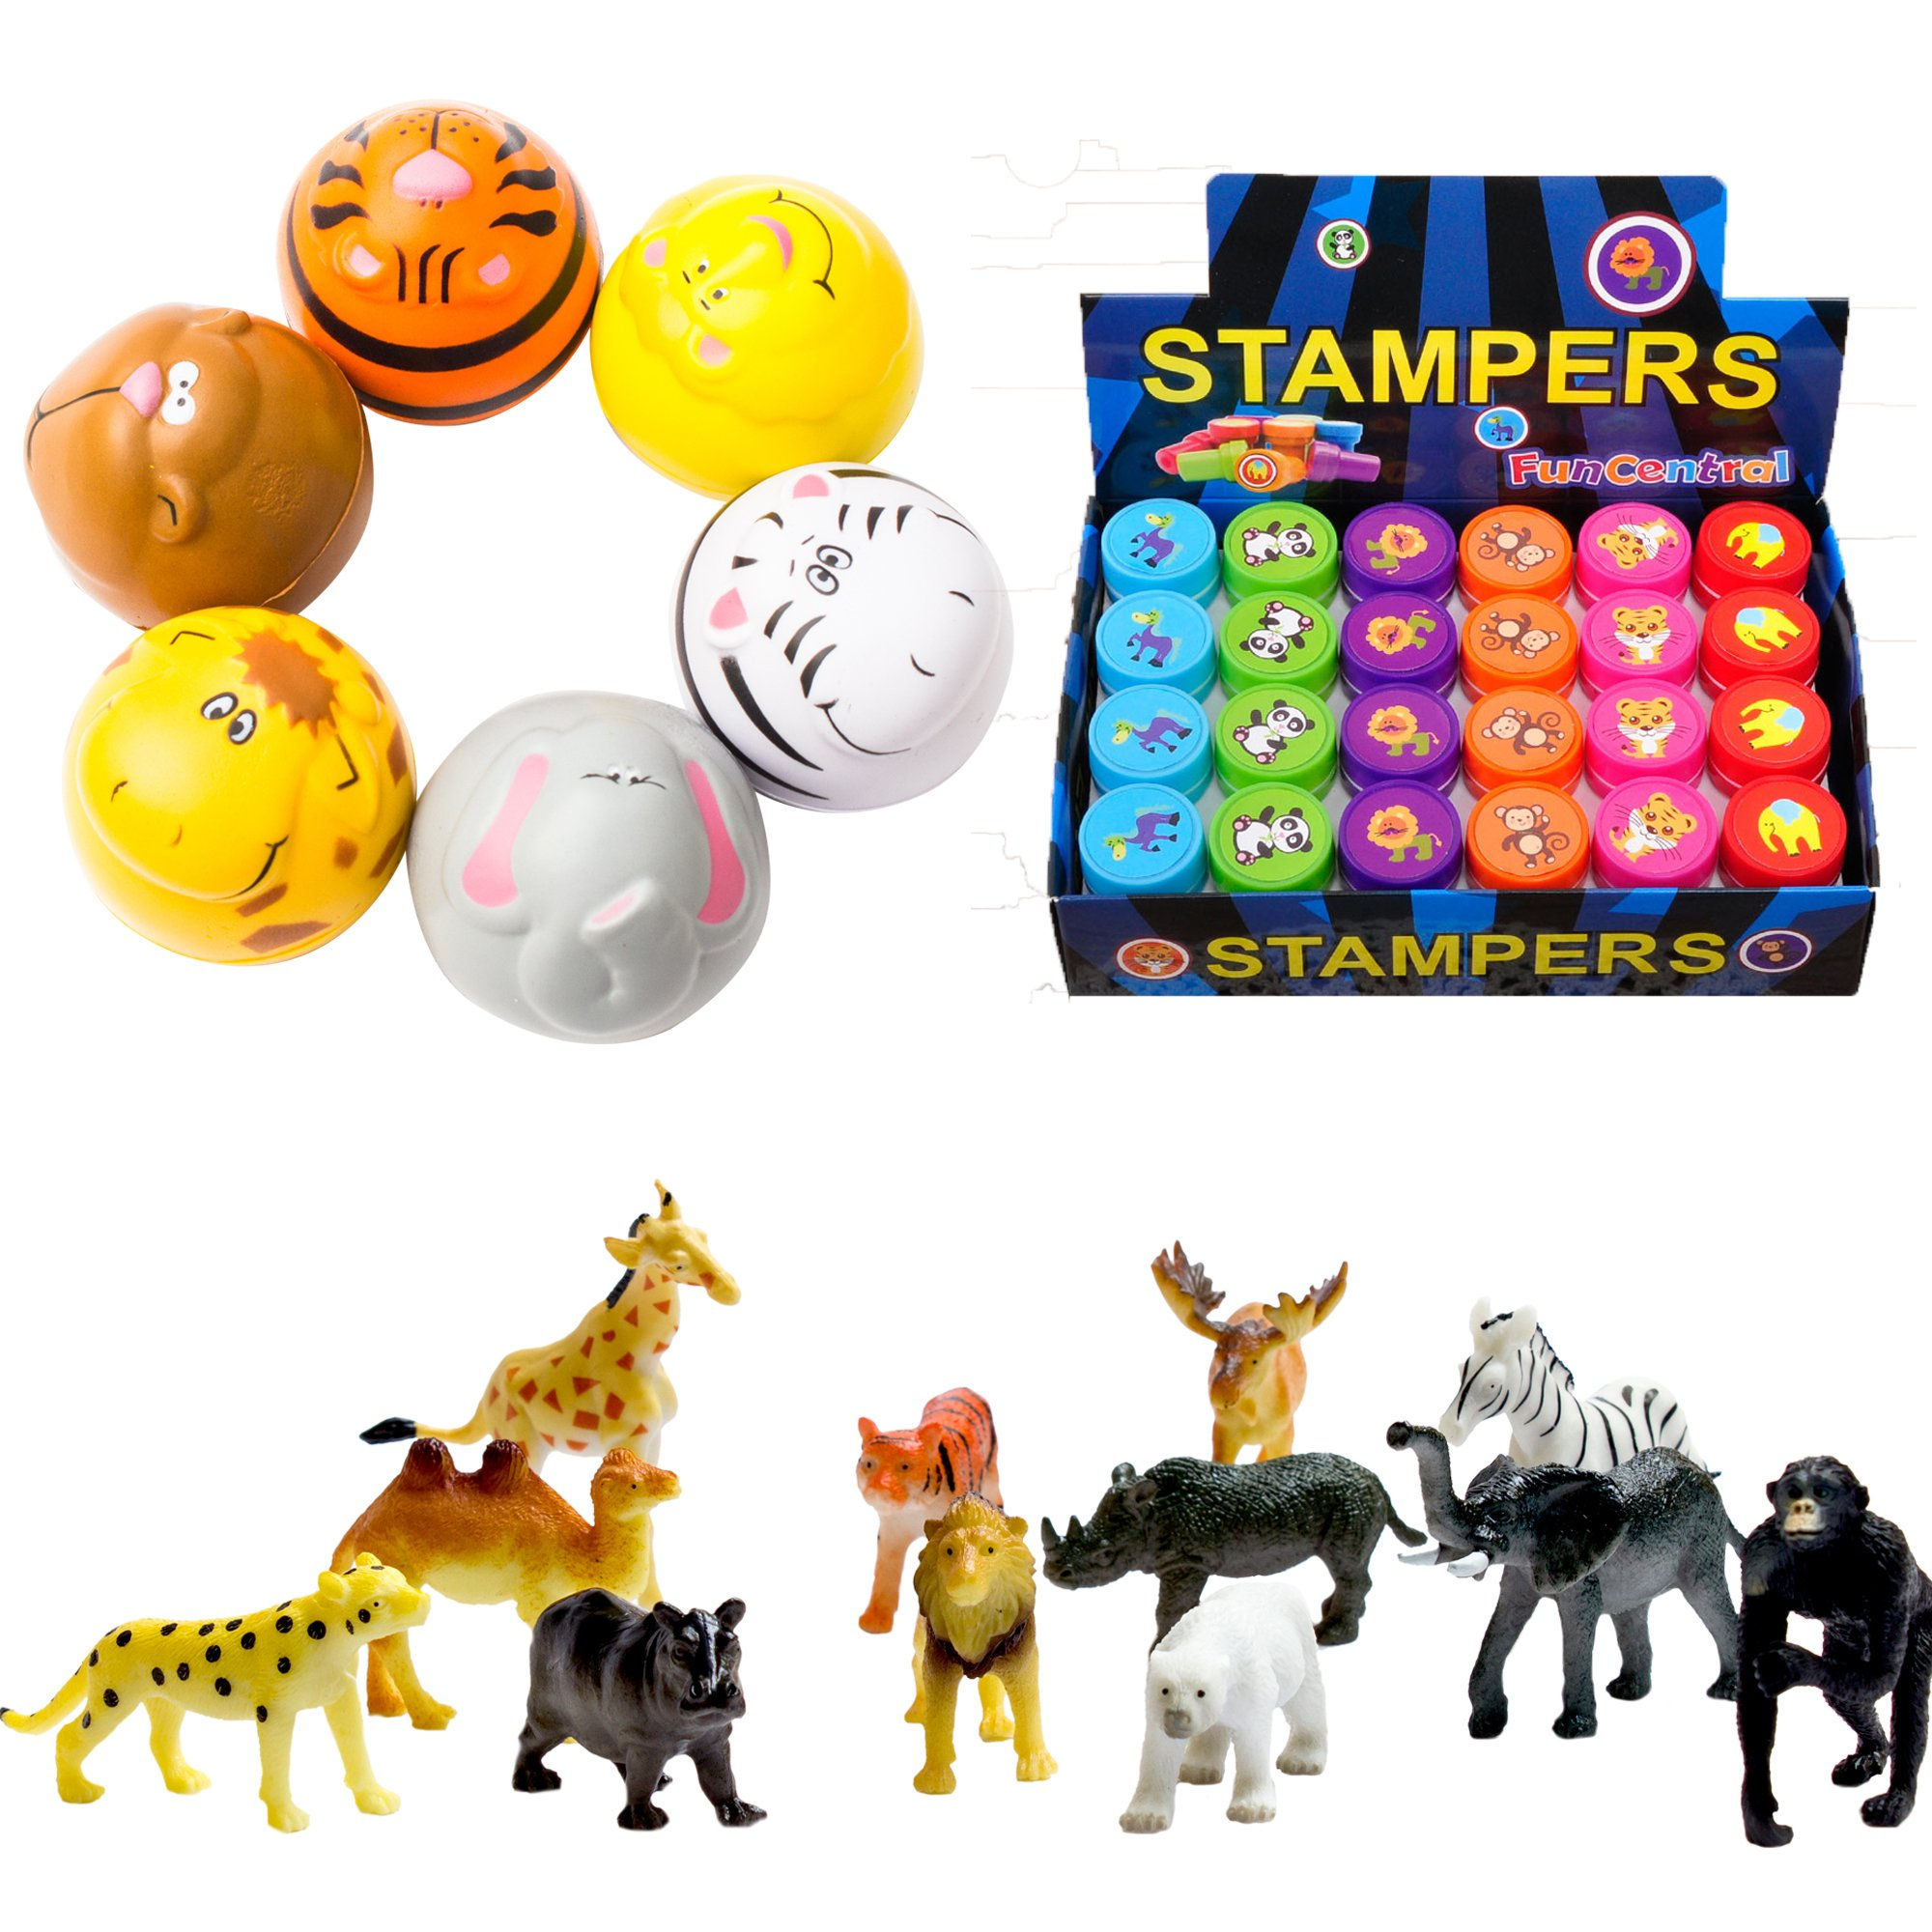 Fun Central BC827 Zoo Animal Party Pack, Zoo Animals Party Supplies, Zoo Animal Party, Zoo Animal Party Favors - 12 Stress balls, 24 Safari Stamp and 12 Safari Animal Figures - Assorted